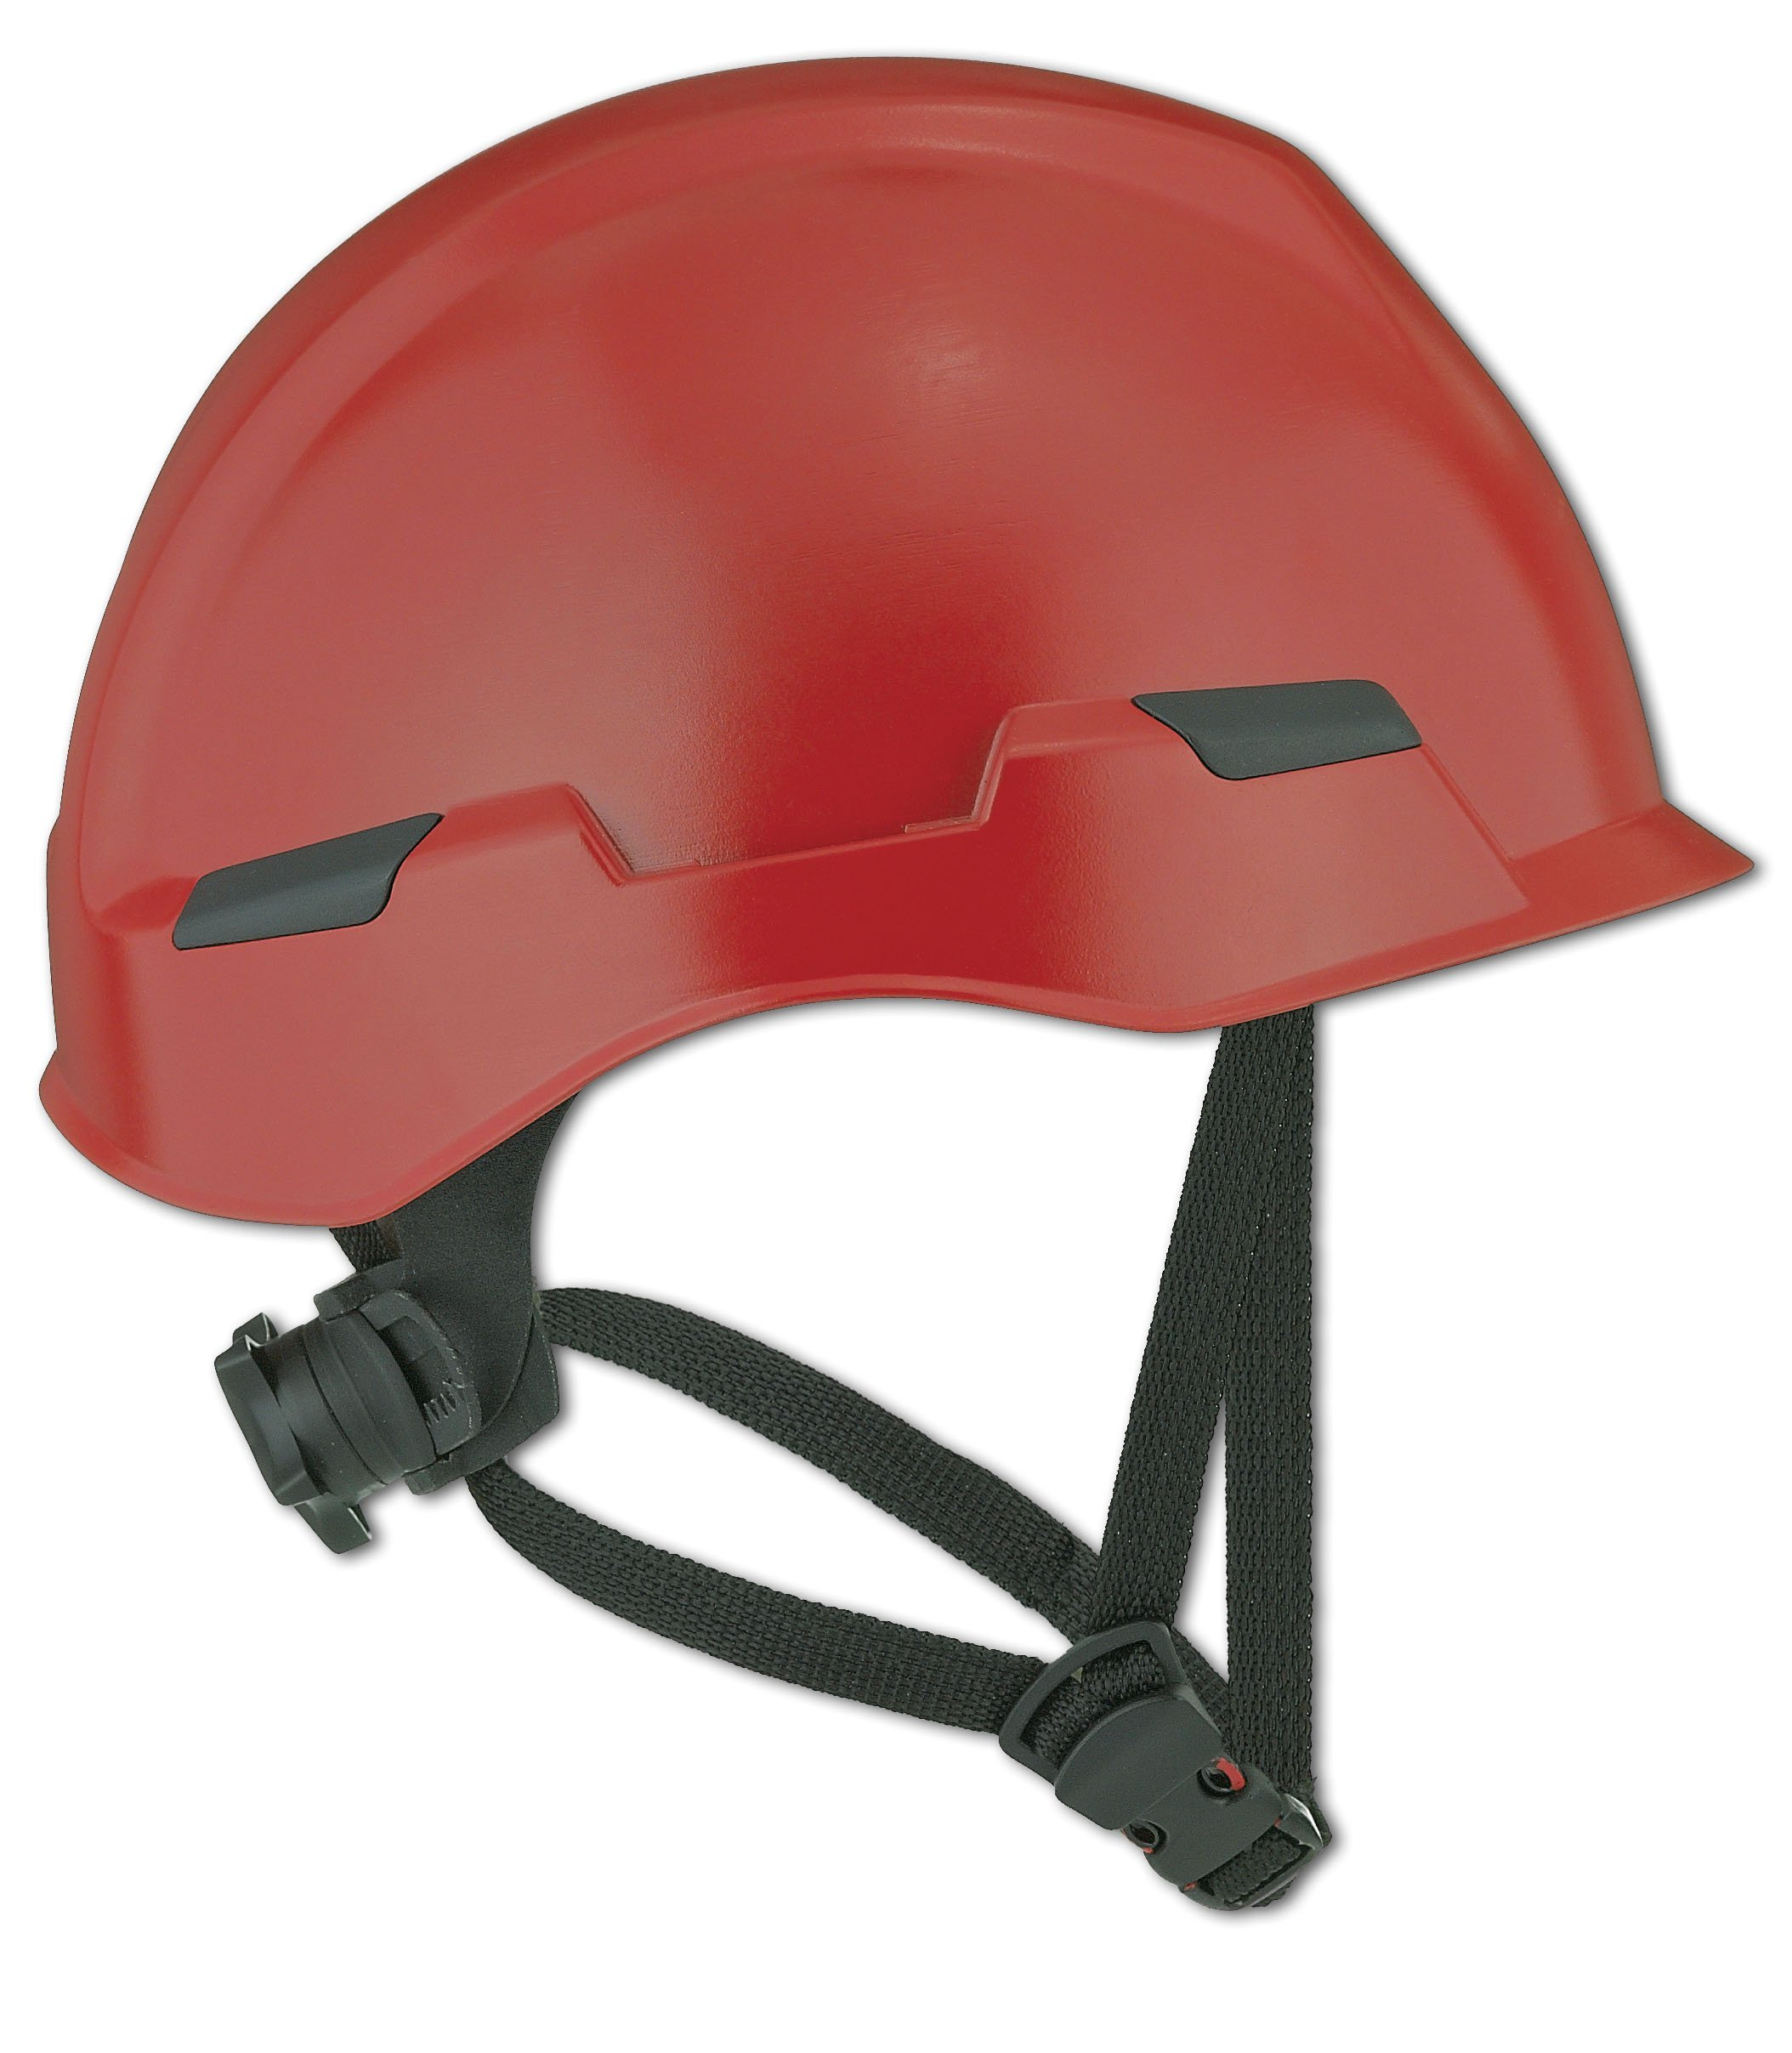 Dynamic Safety HP142R/15 Rocky Hard Hat with Nylon Suspension and Sure-Lock II Ratchet, Permanently Attached 4 Points Chin-Strap Adjustment, ANSI Type II, One Size, Red